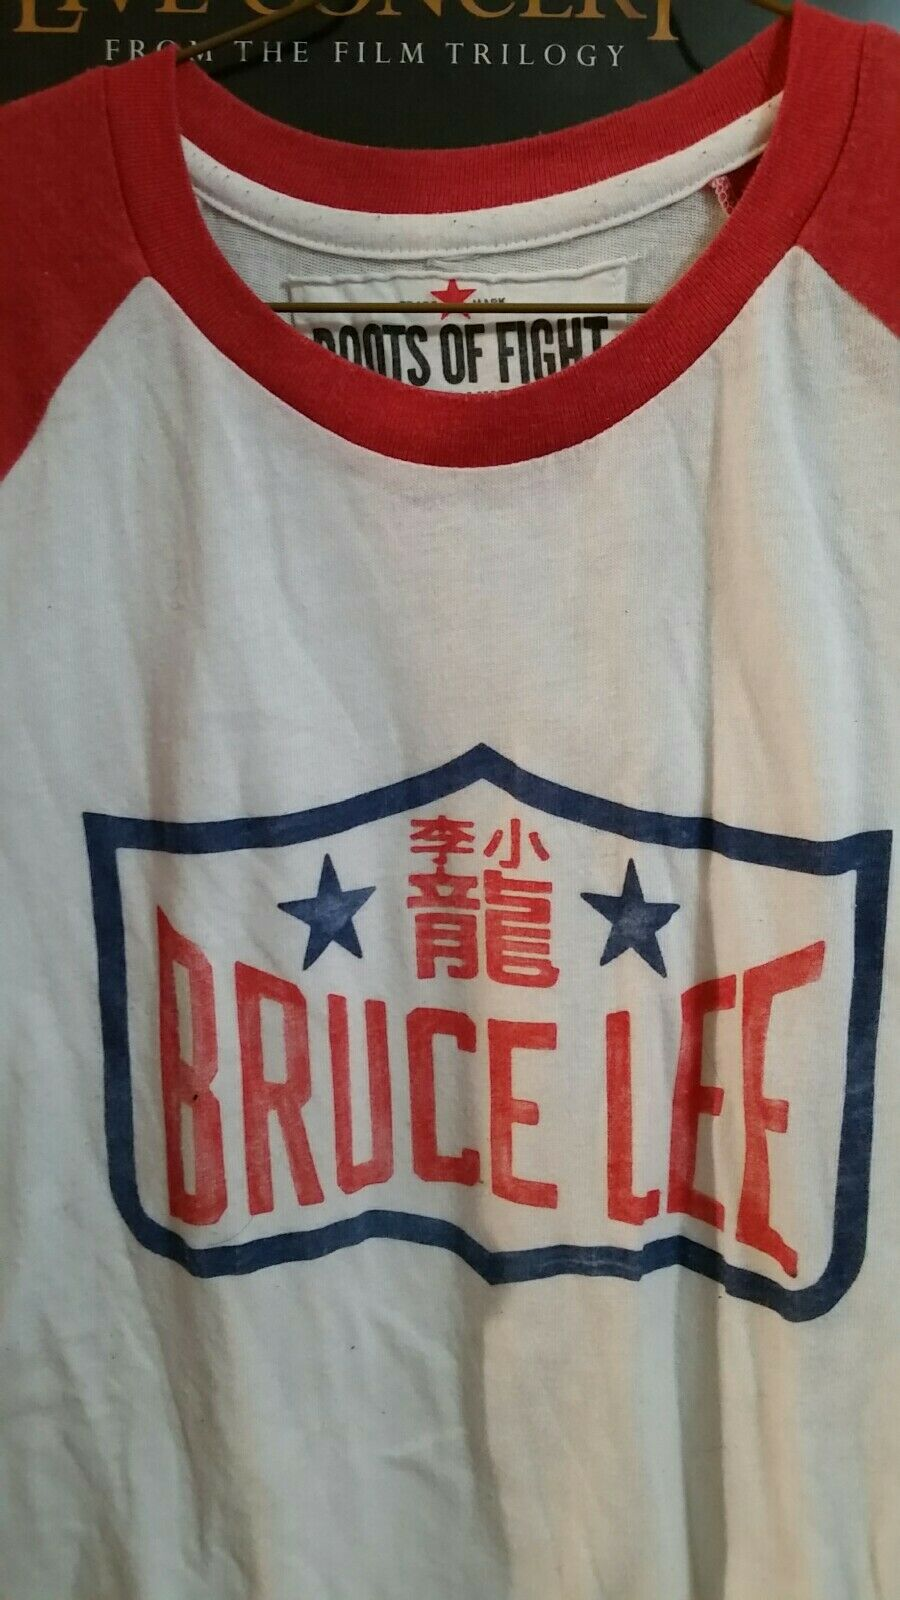 Bruce Lee Roots of Fight Raglan Sleeve Red Triblend T Shirt Baseball 3 4 Sleeve